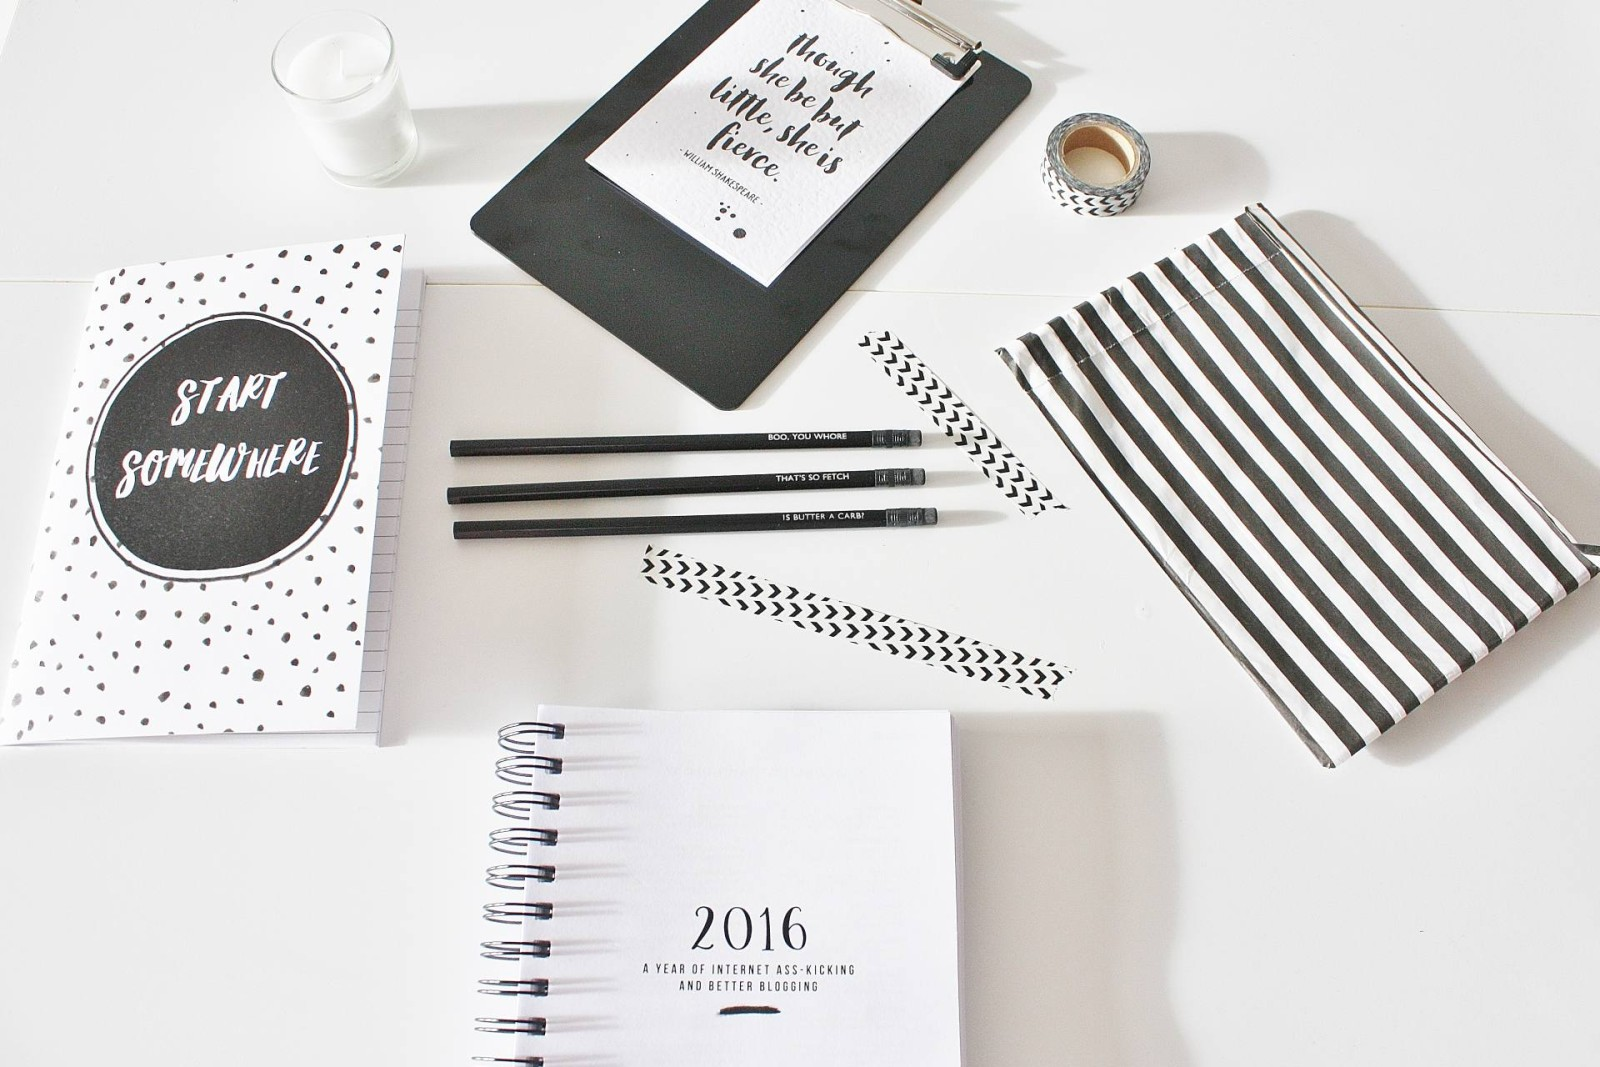 Monochrome Desk Essentials